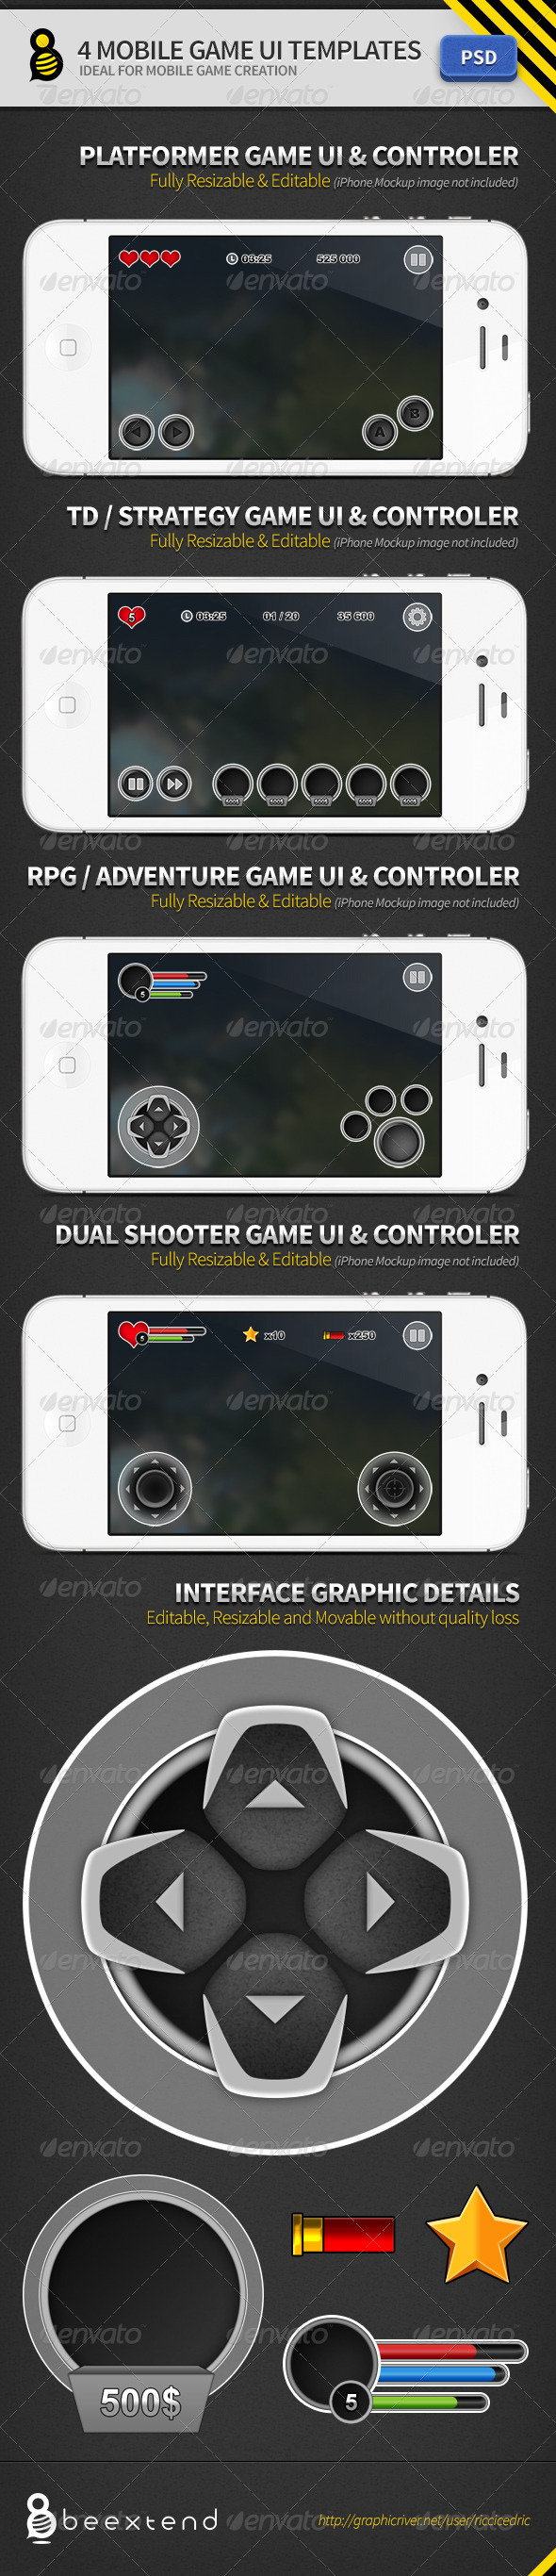 4 Mobile Game UI Templates - Miscellaneous Web Elements